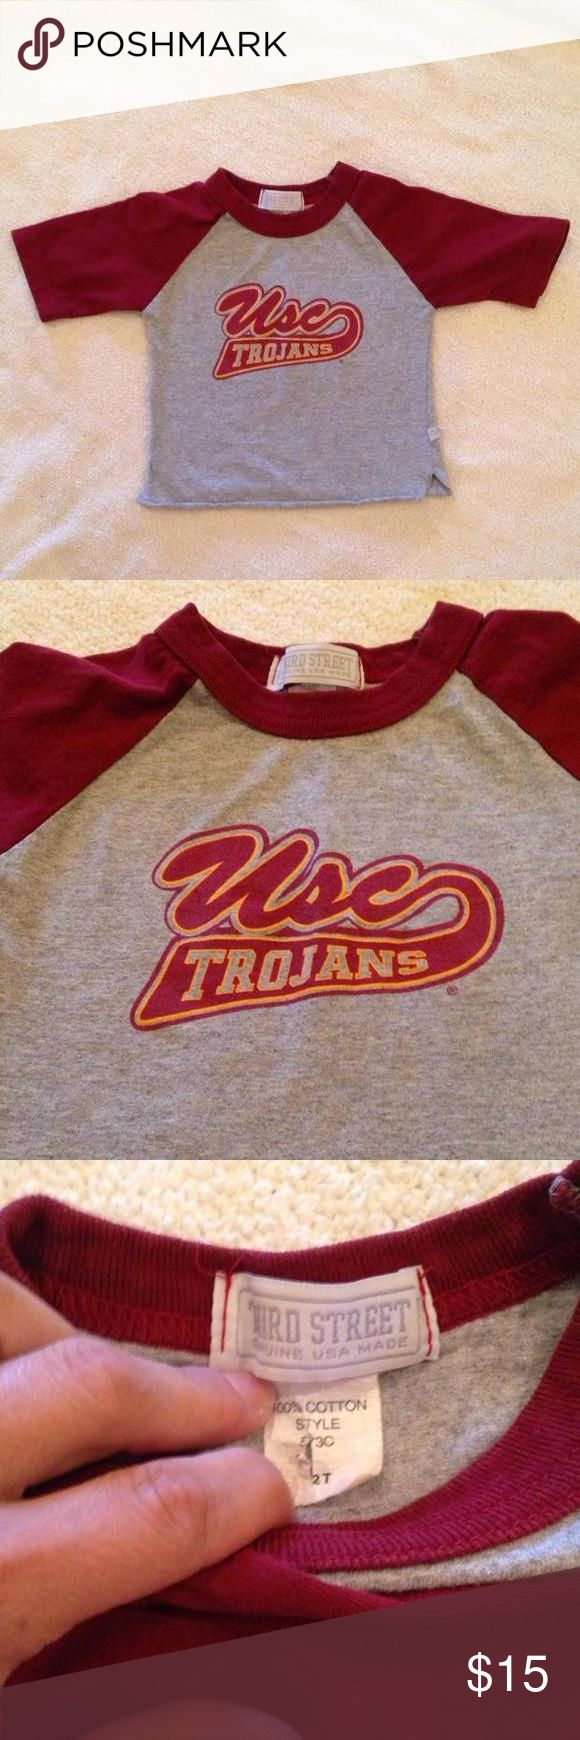 USC Trojans Tee Adorable USC Trojans Tee. Vented sides. Excellent condition. Size 2T but I believe runs small. Better for 12-24 month old. Pet free smoke free home only washed with tide free. Unique and adorable tee. Purchased at the old USC store at south coast plaza. Shirts & Tops